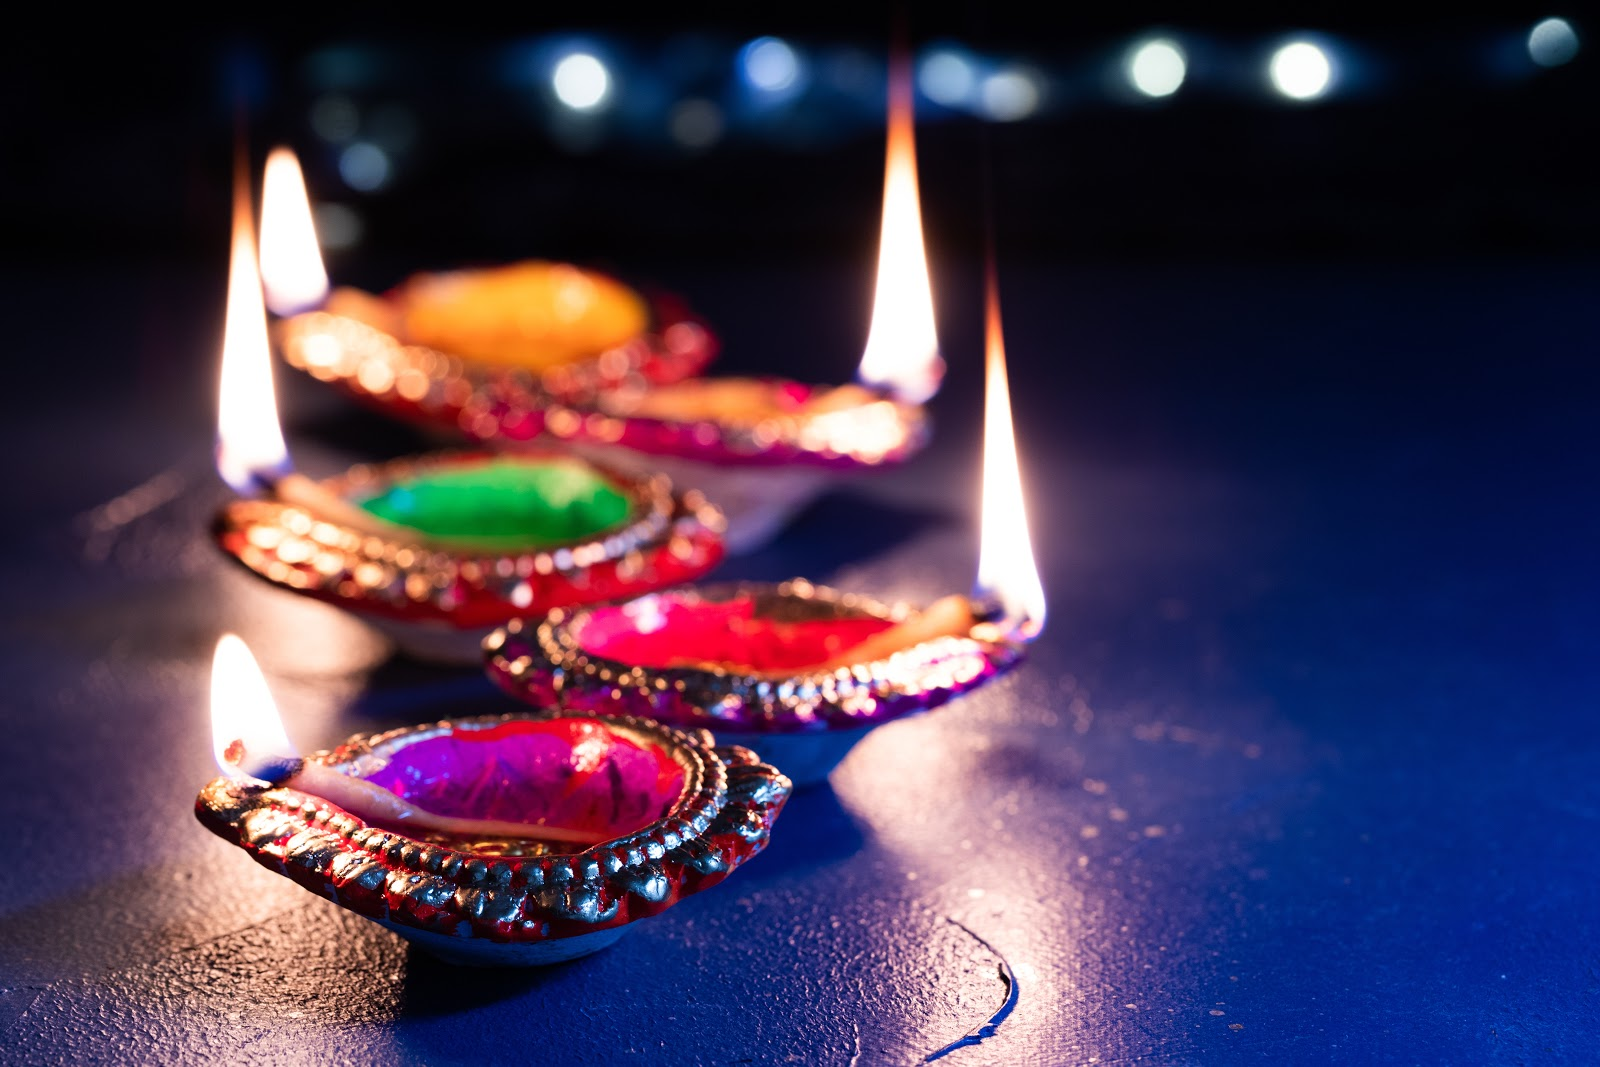 Diwali party ideas for decorations: a row of colorful diya lit up